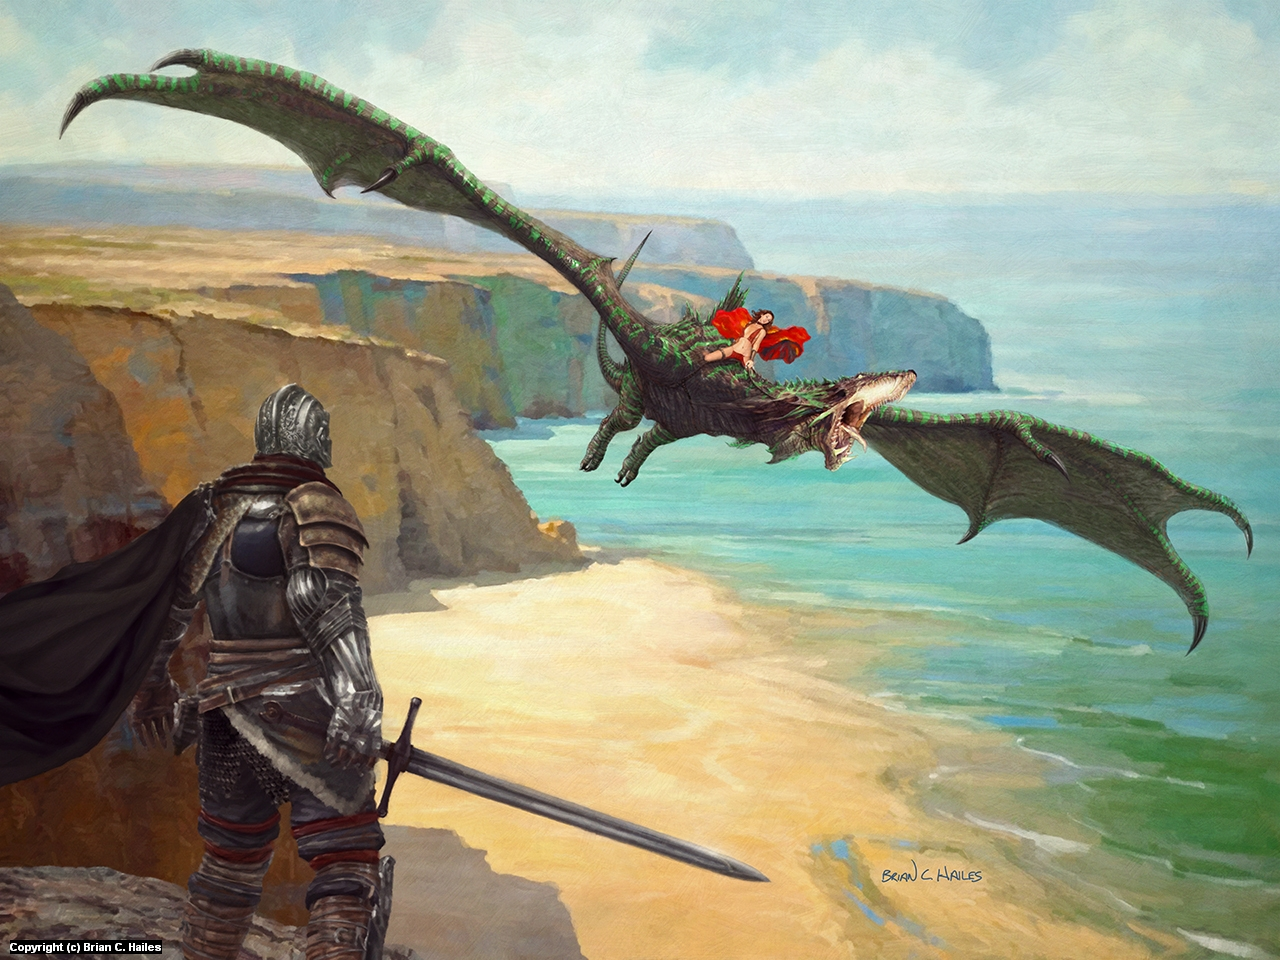 Cliff Dragon Artwork by Brian C. Hailes